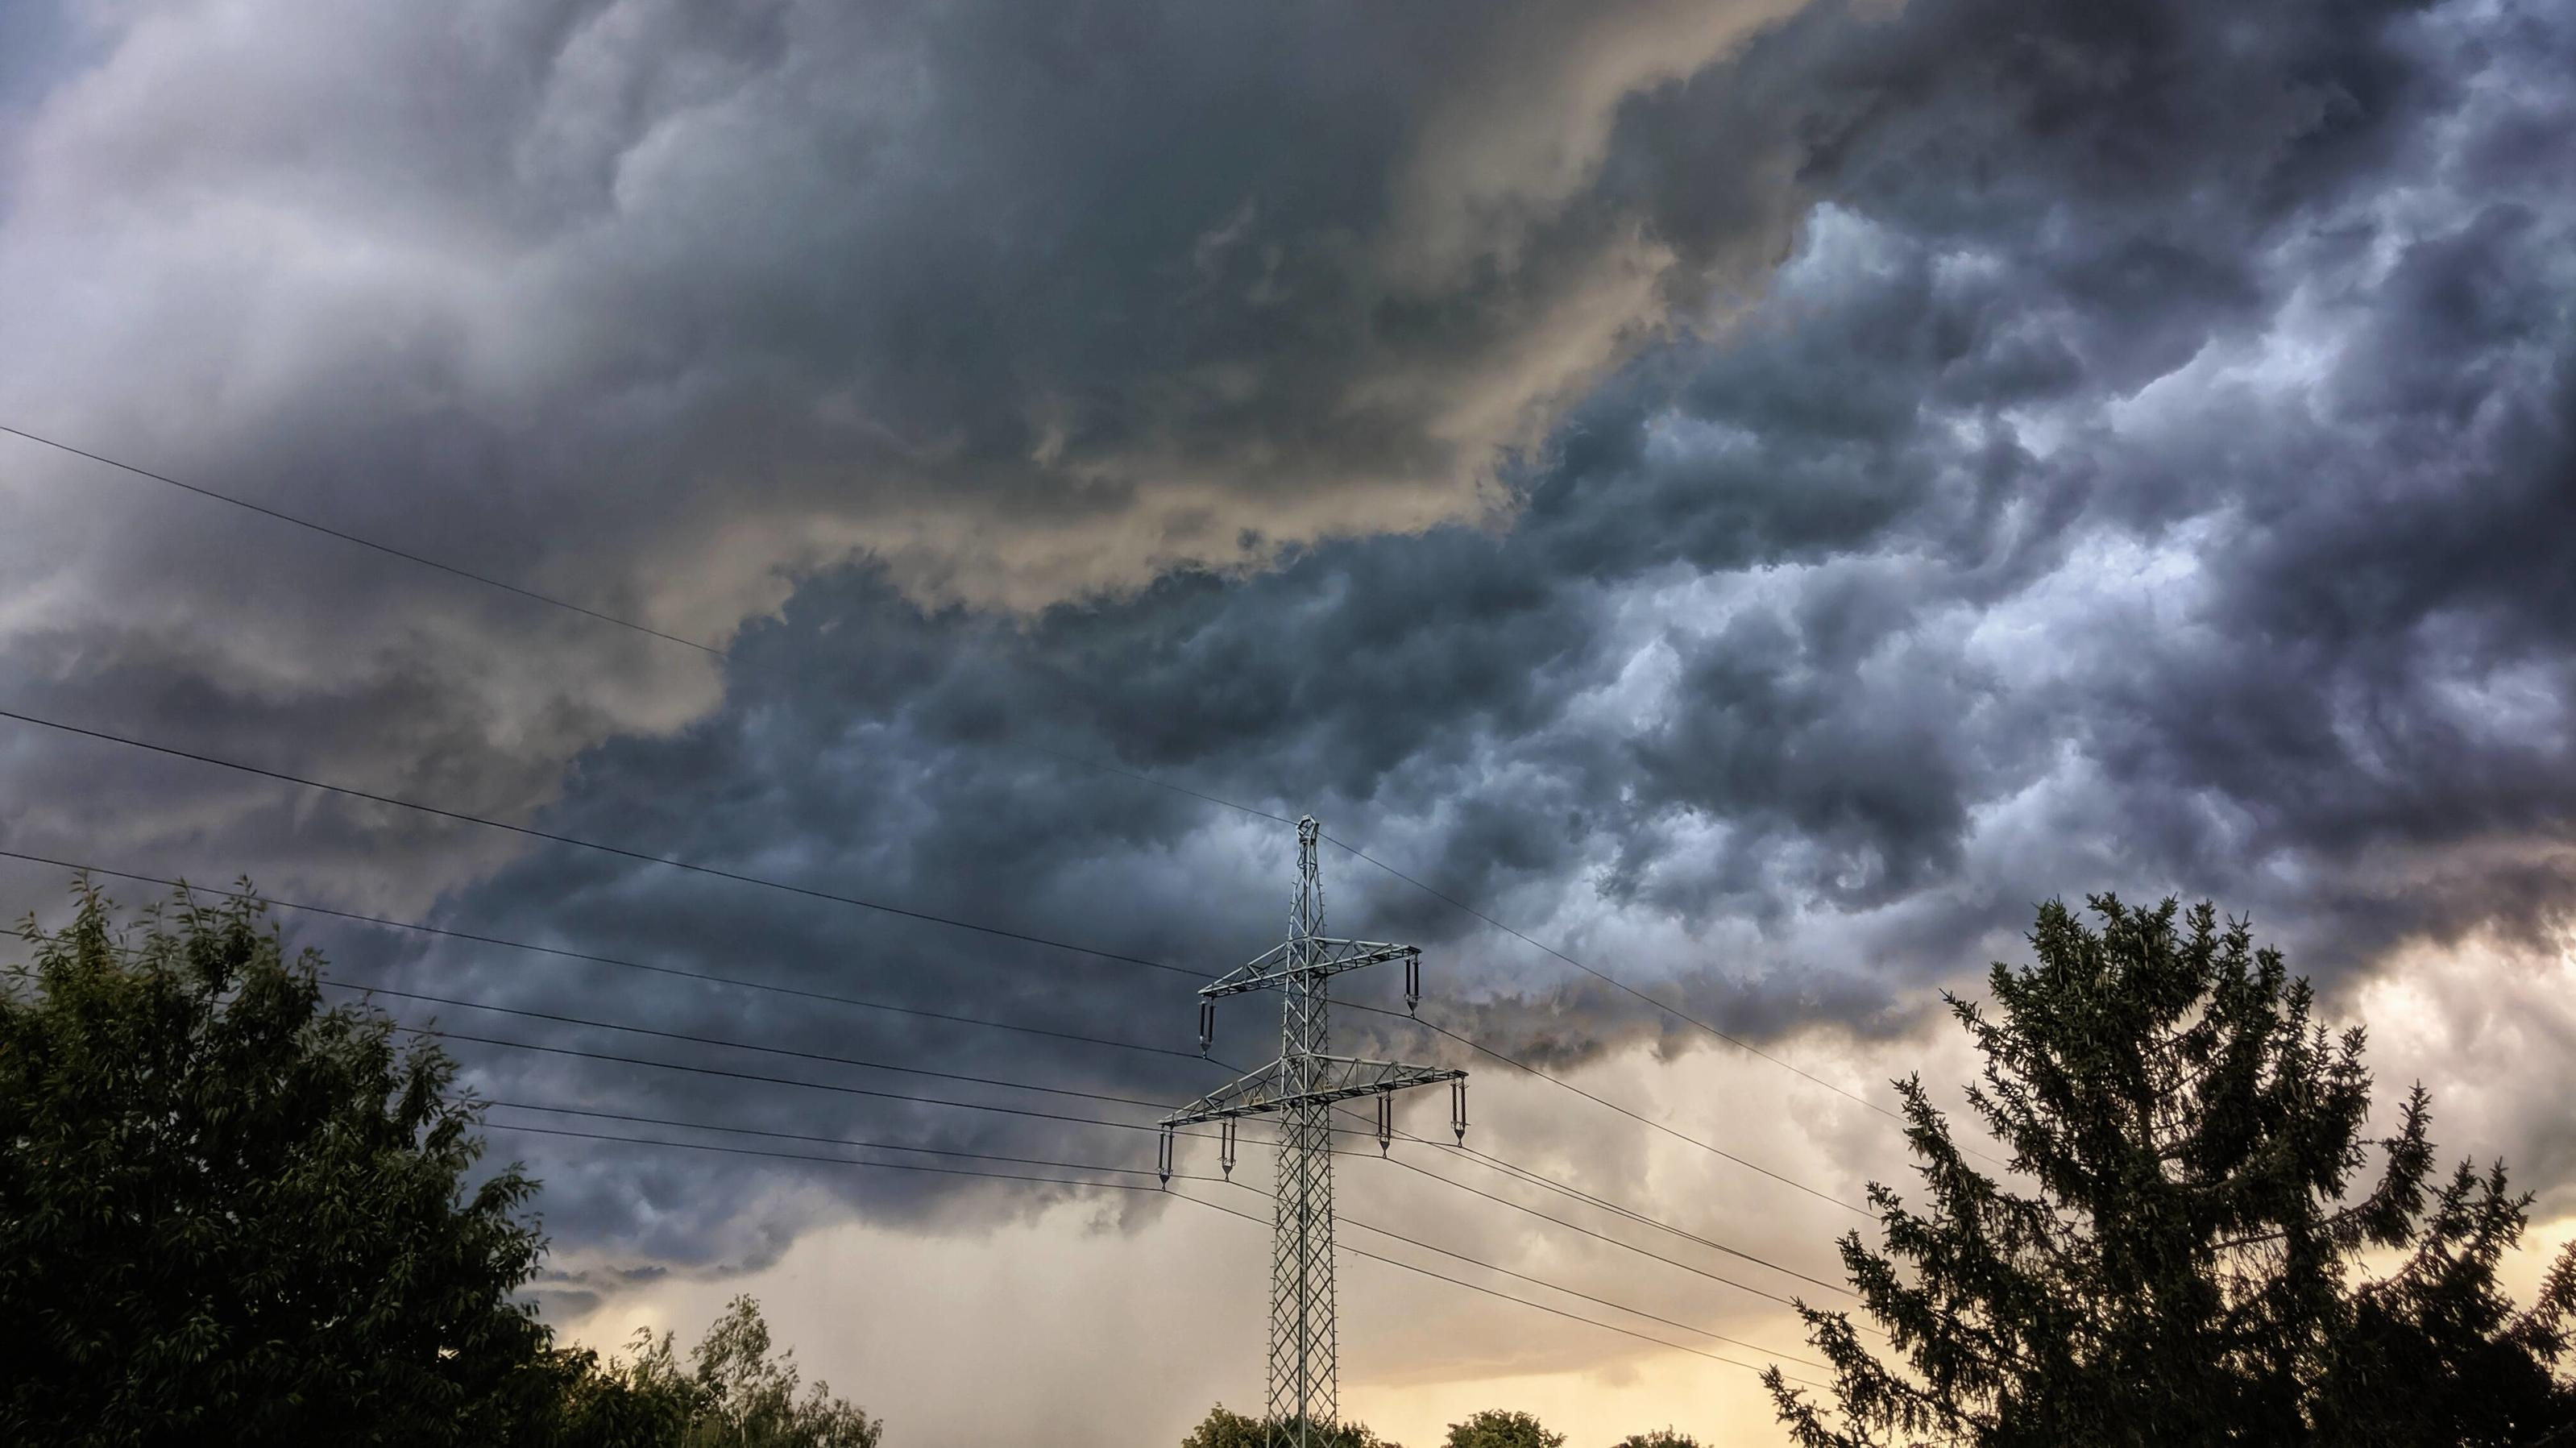 July 1, 2020, Munich, Bavaria, Germany: Dark, ominous storm clouds hover over Munich bringing thunder, lighting, and rain behind. Munich Germany - ZUMAb160 20200701_zbp_b160_001 Copyright: xSachellexBabbarx